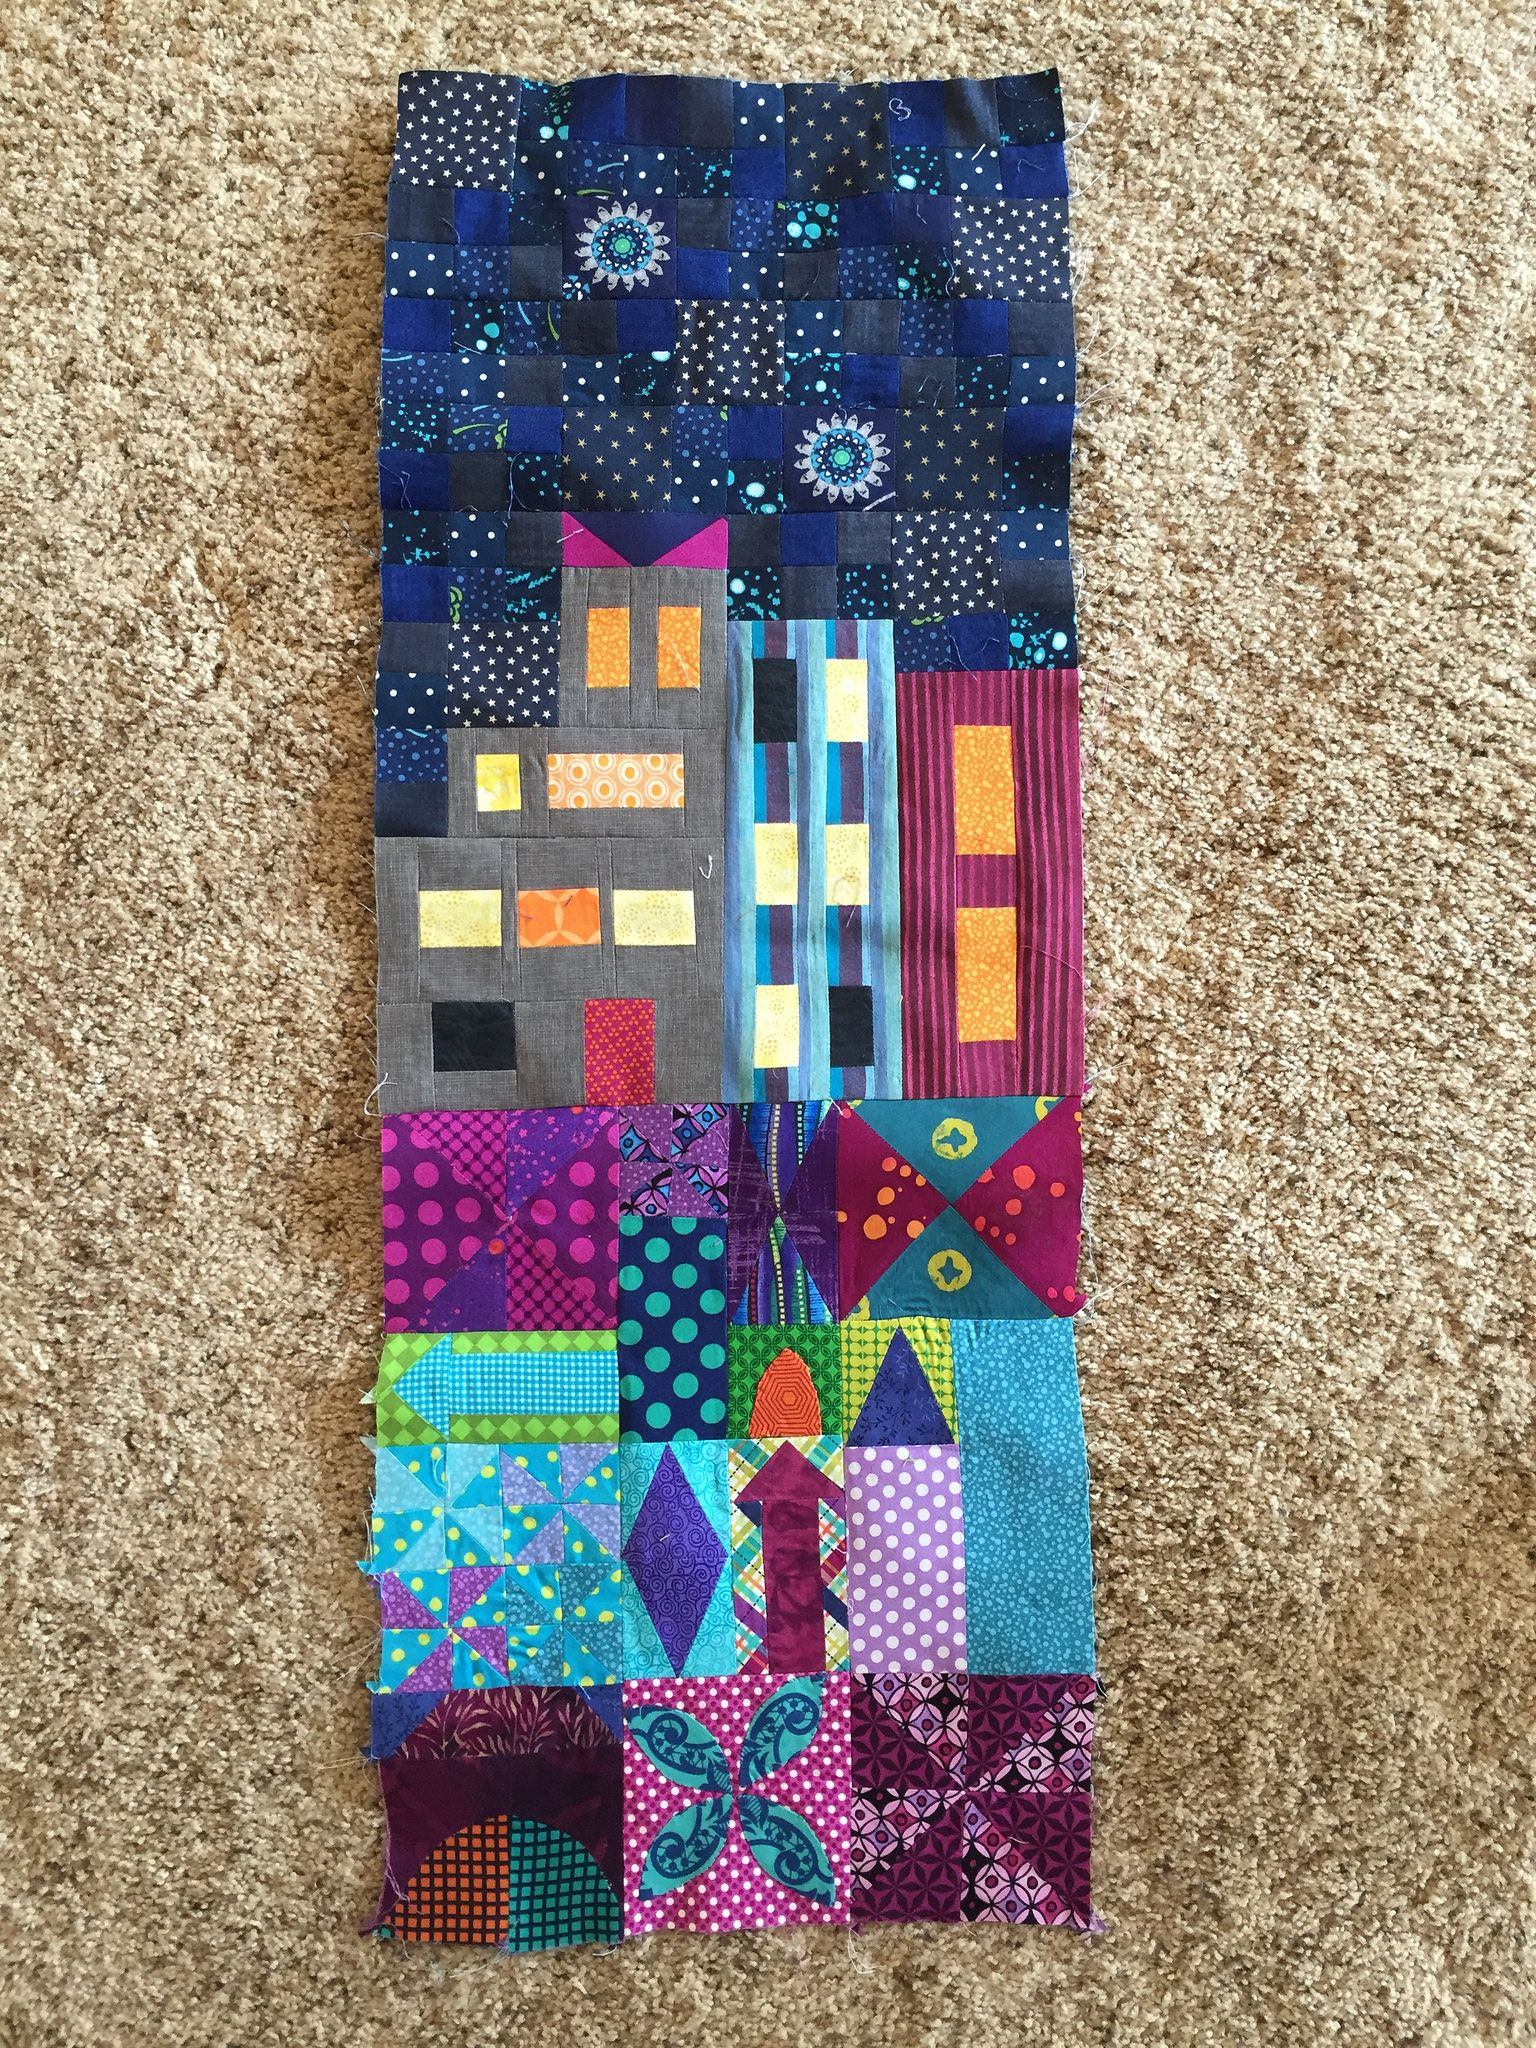 My Small World Quilt by Jen Kingwell | Mini quilts, House quilts ... : quilts by jen - Adamdwight.com